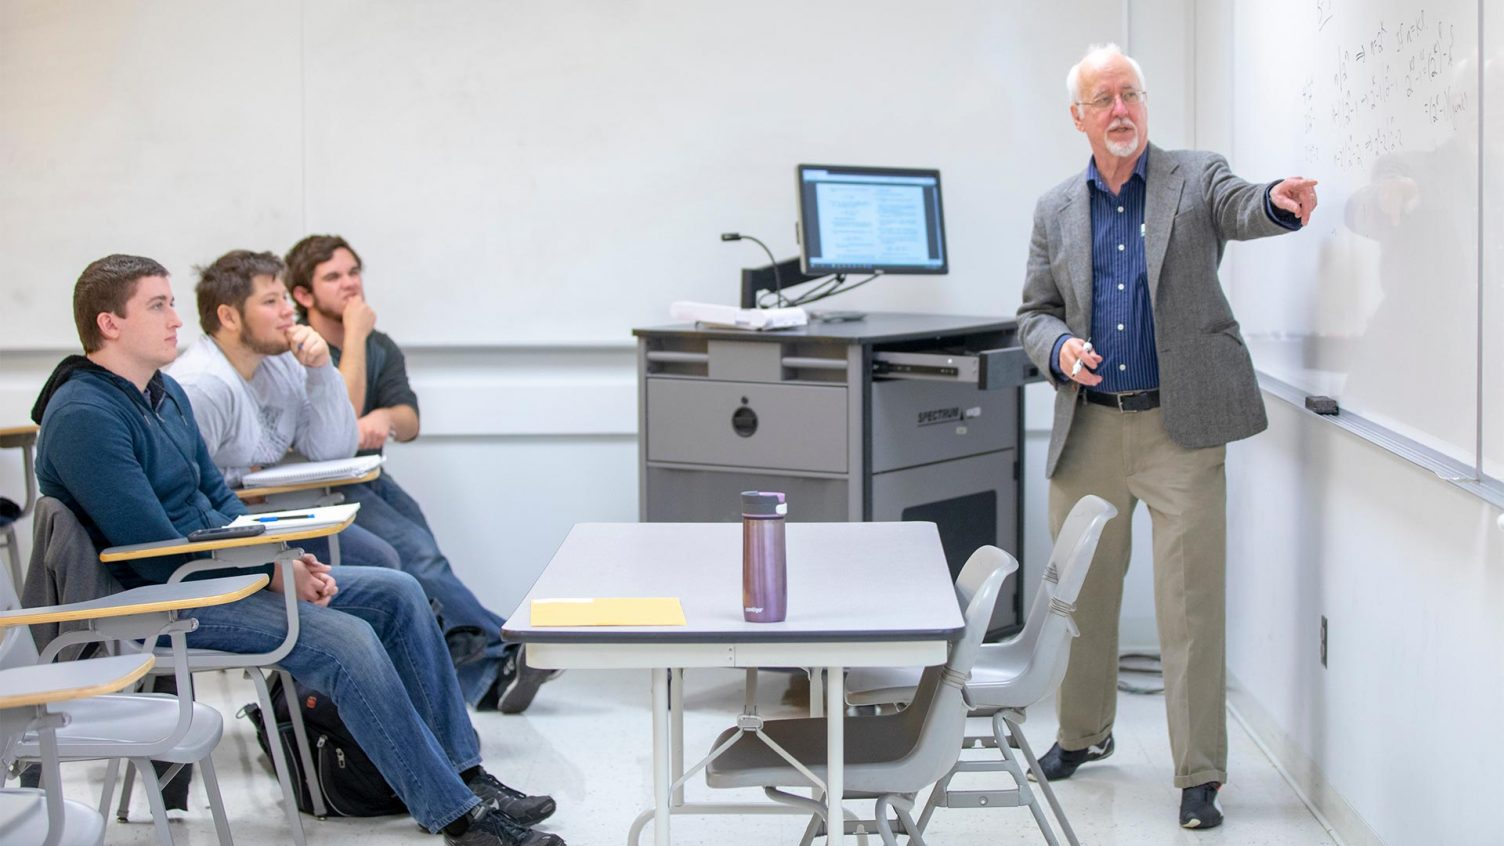 Dr. Les Reid explains a concept to a classroom of students